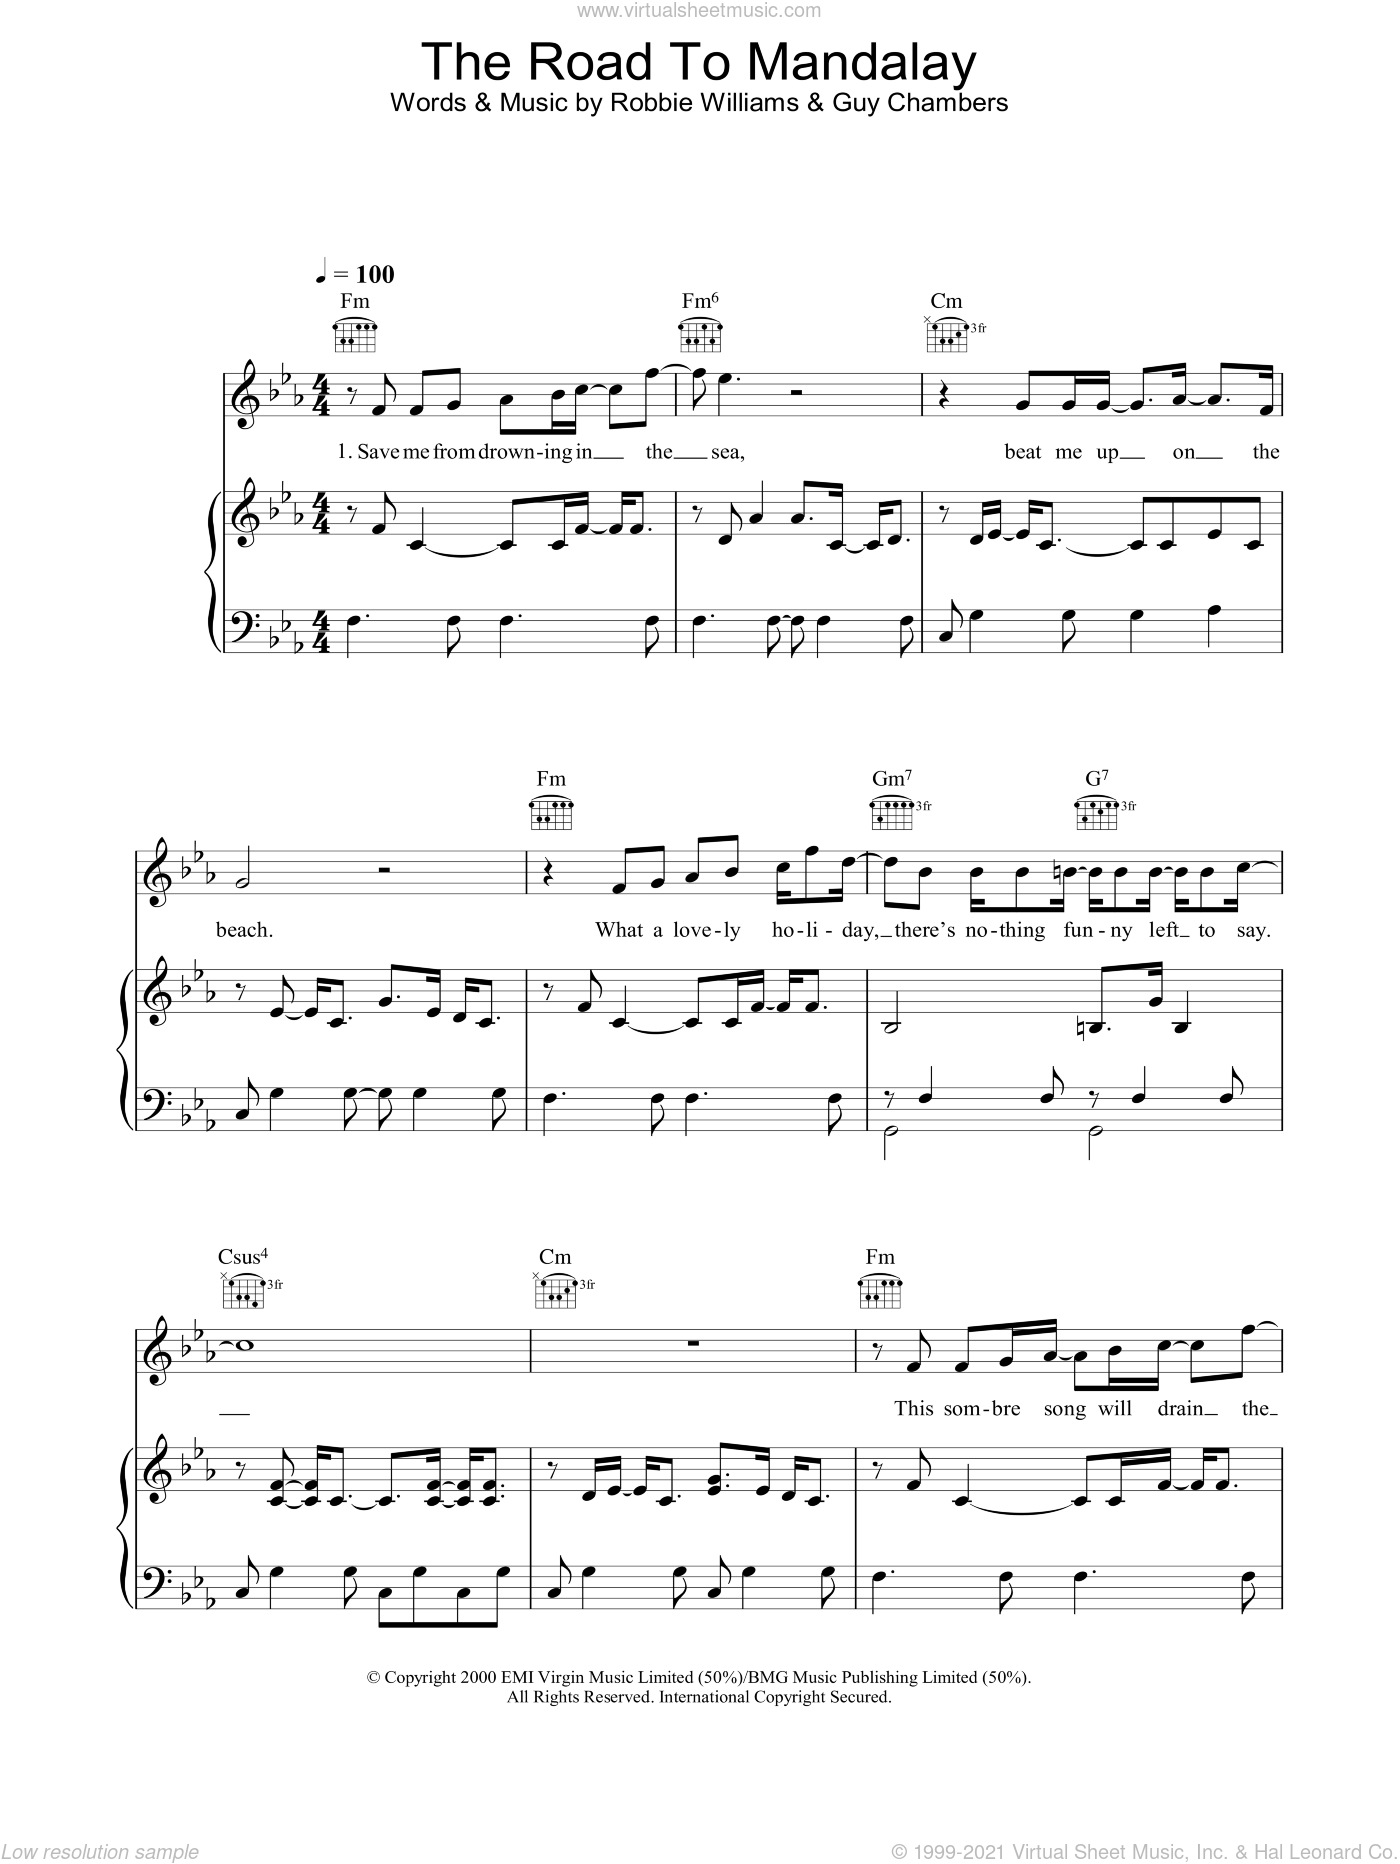 The Road To Mandalay sheet music for voice, piano or guitar by Guy Chambers and Robbie Williams. Score Image Preview.